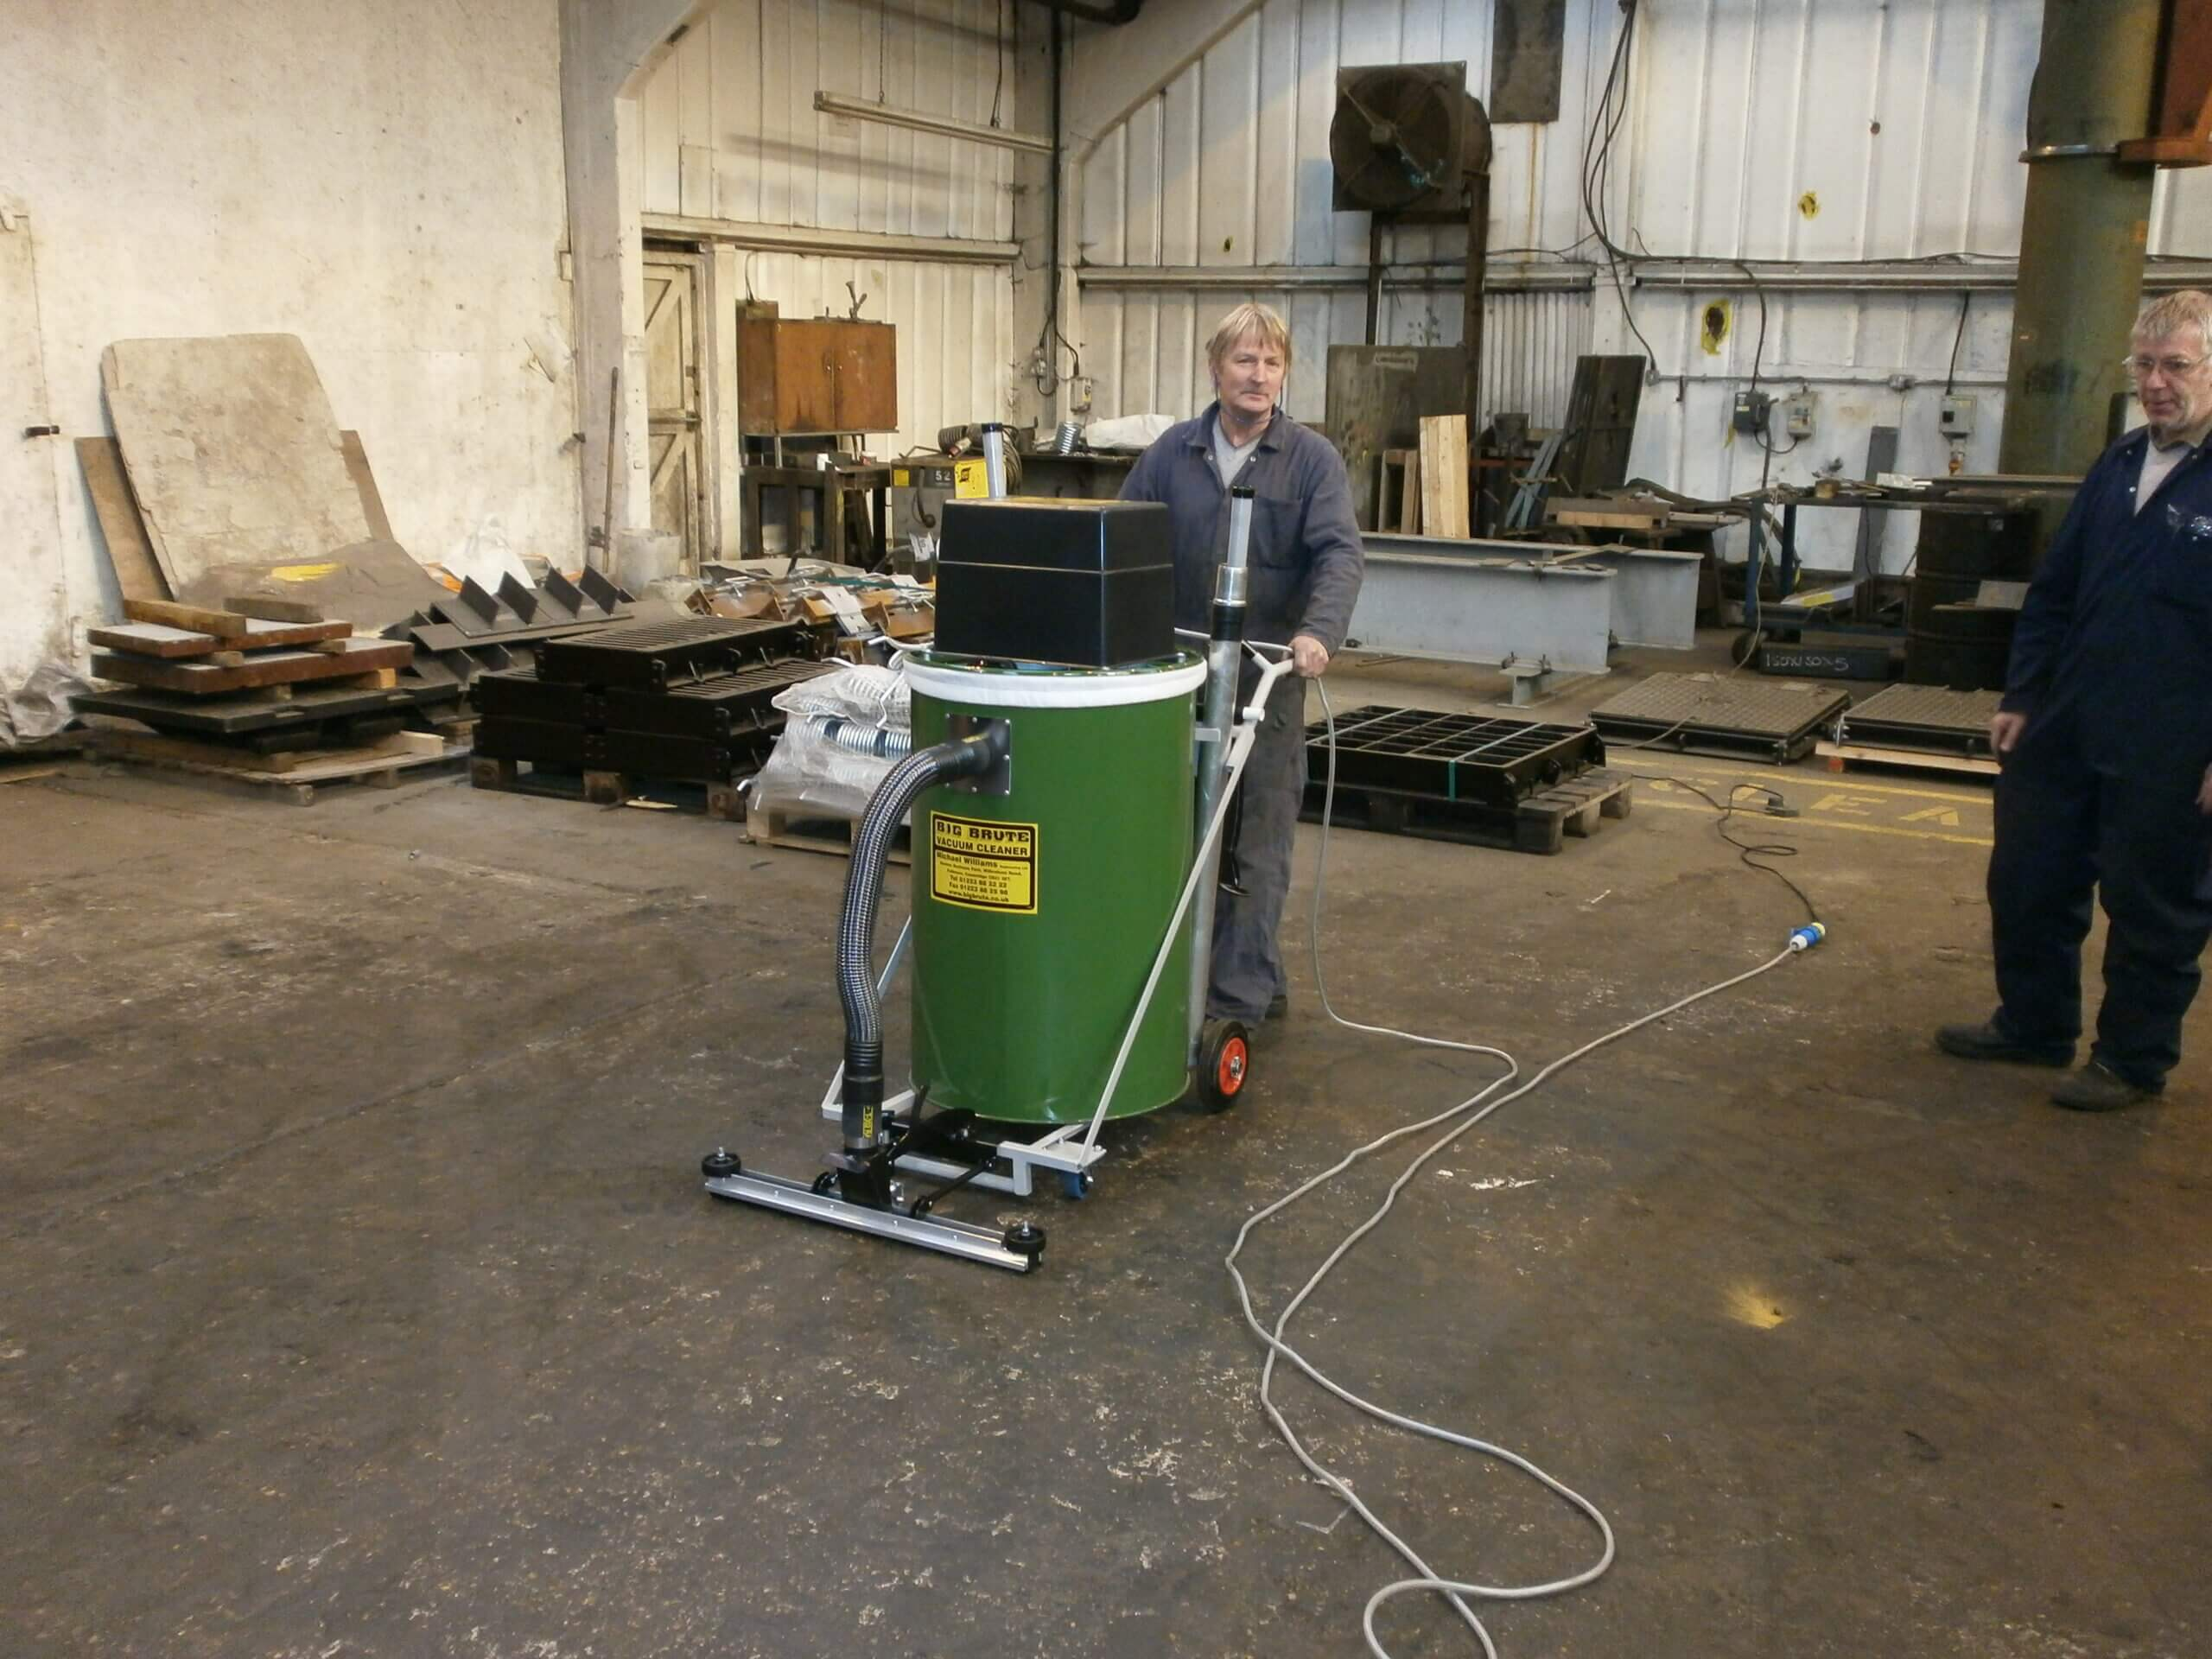 Gatic Dover With Their New Big Brute Warehouseman Industrial Vacuum Cleaner